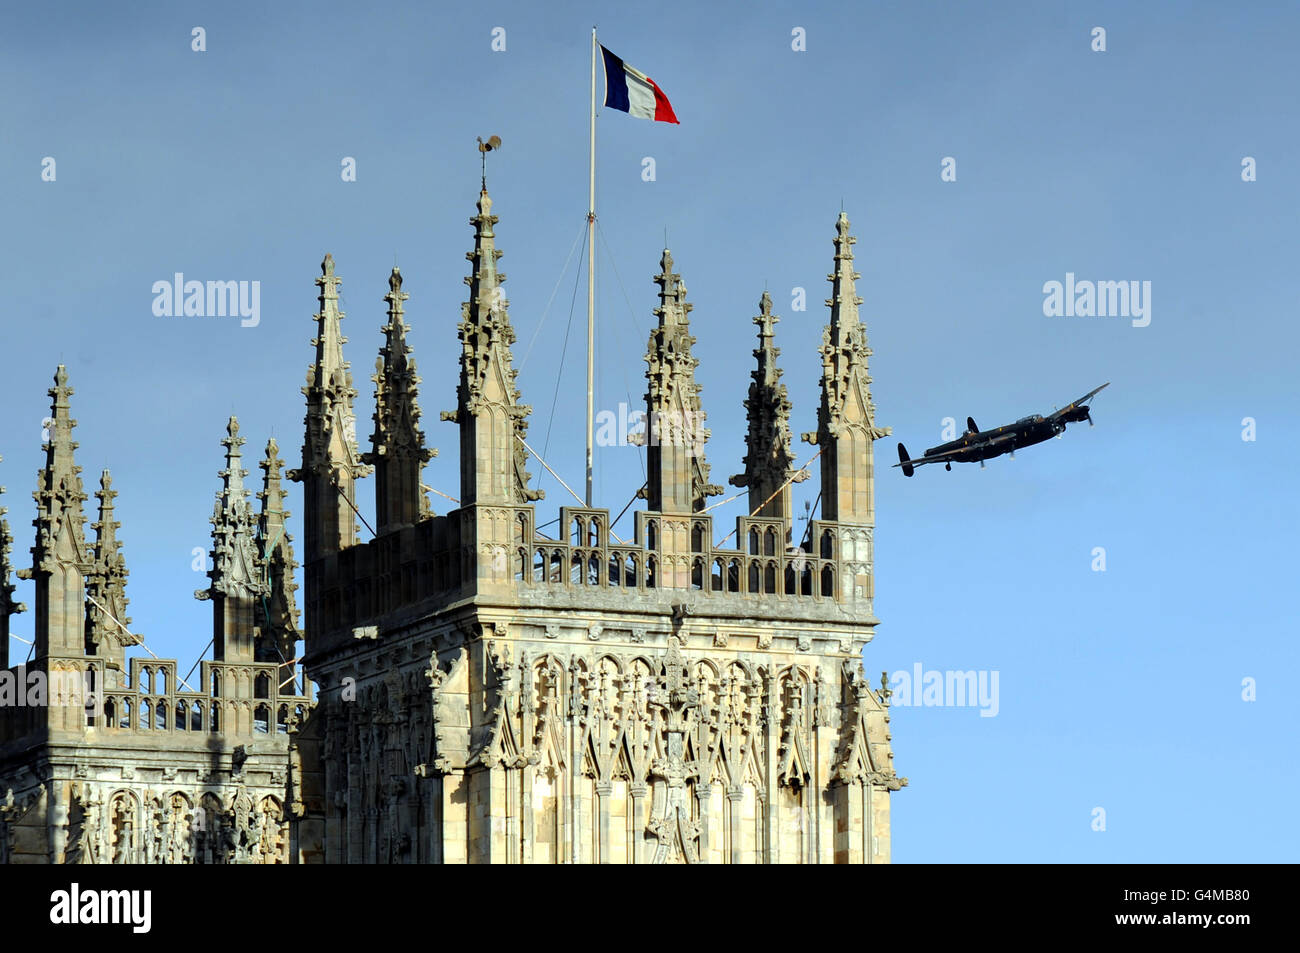 WWII French airmen commemorated - Stock Image